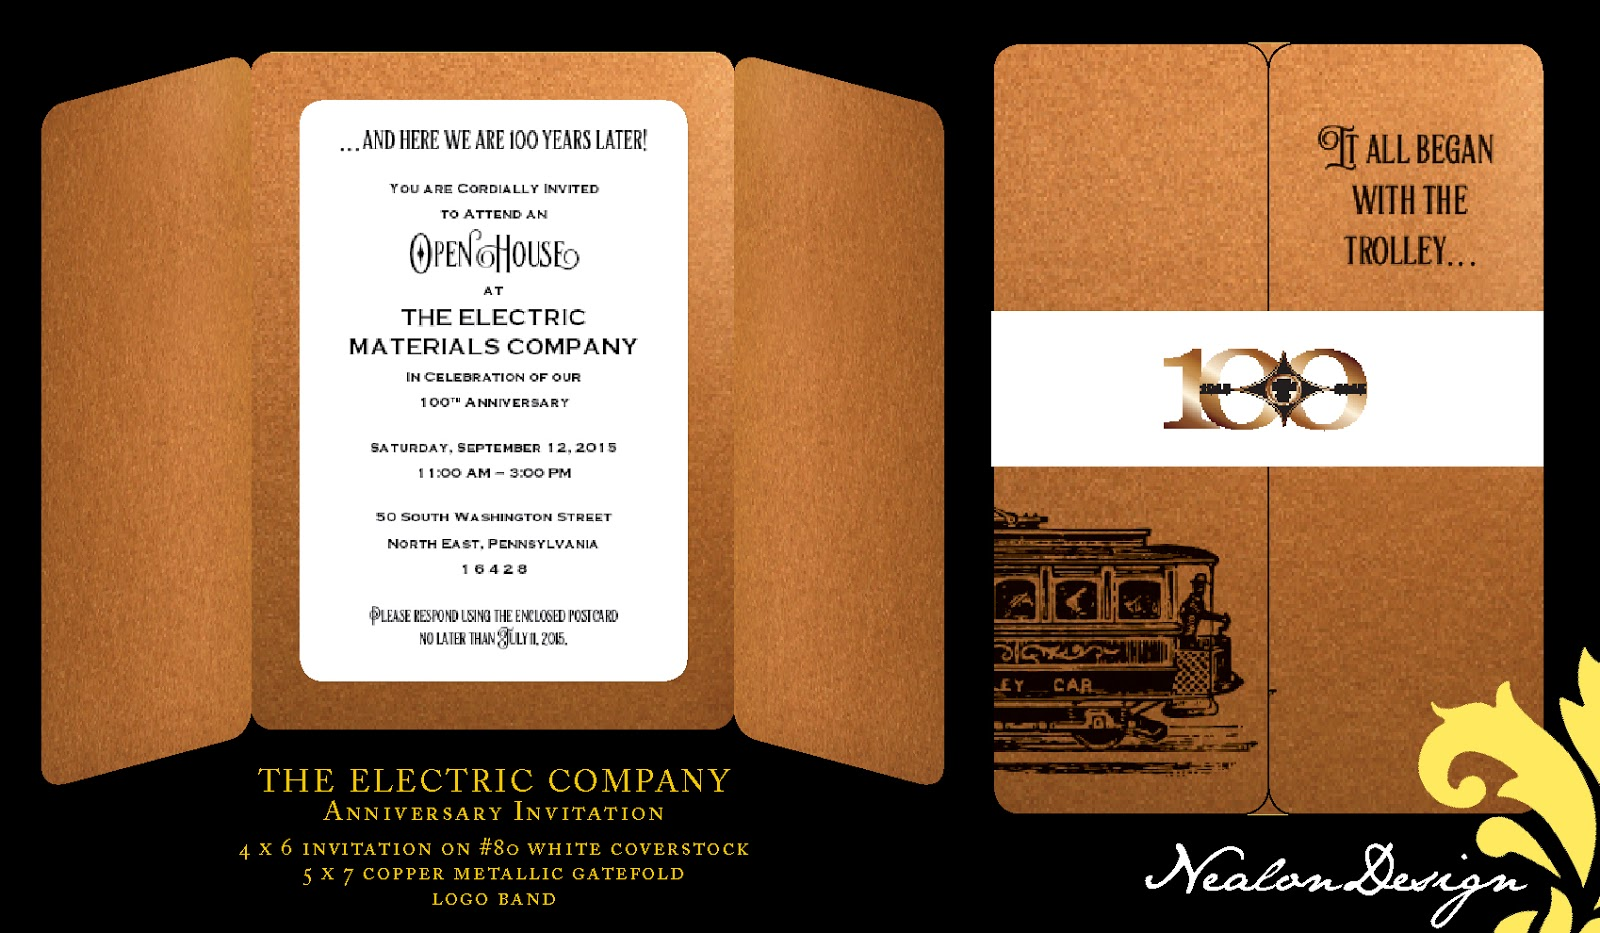 Nealon design electric materials company 100th anniversary i was asked to design an anniversary invitation for the electric materials company celebrating an impressive 100 years the client liked my family tree stopboris Images